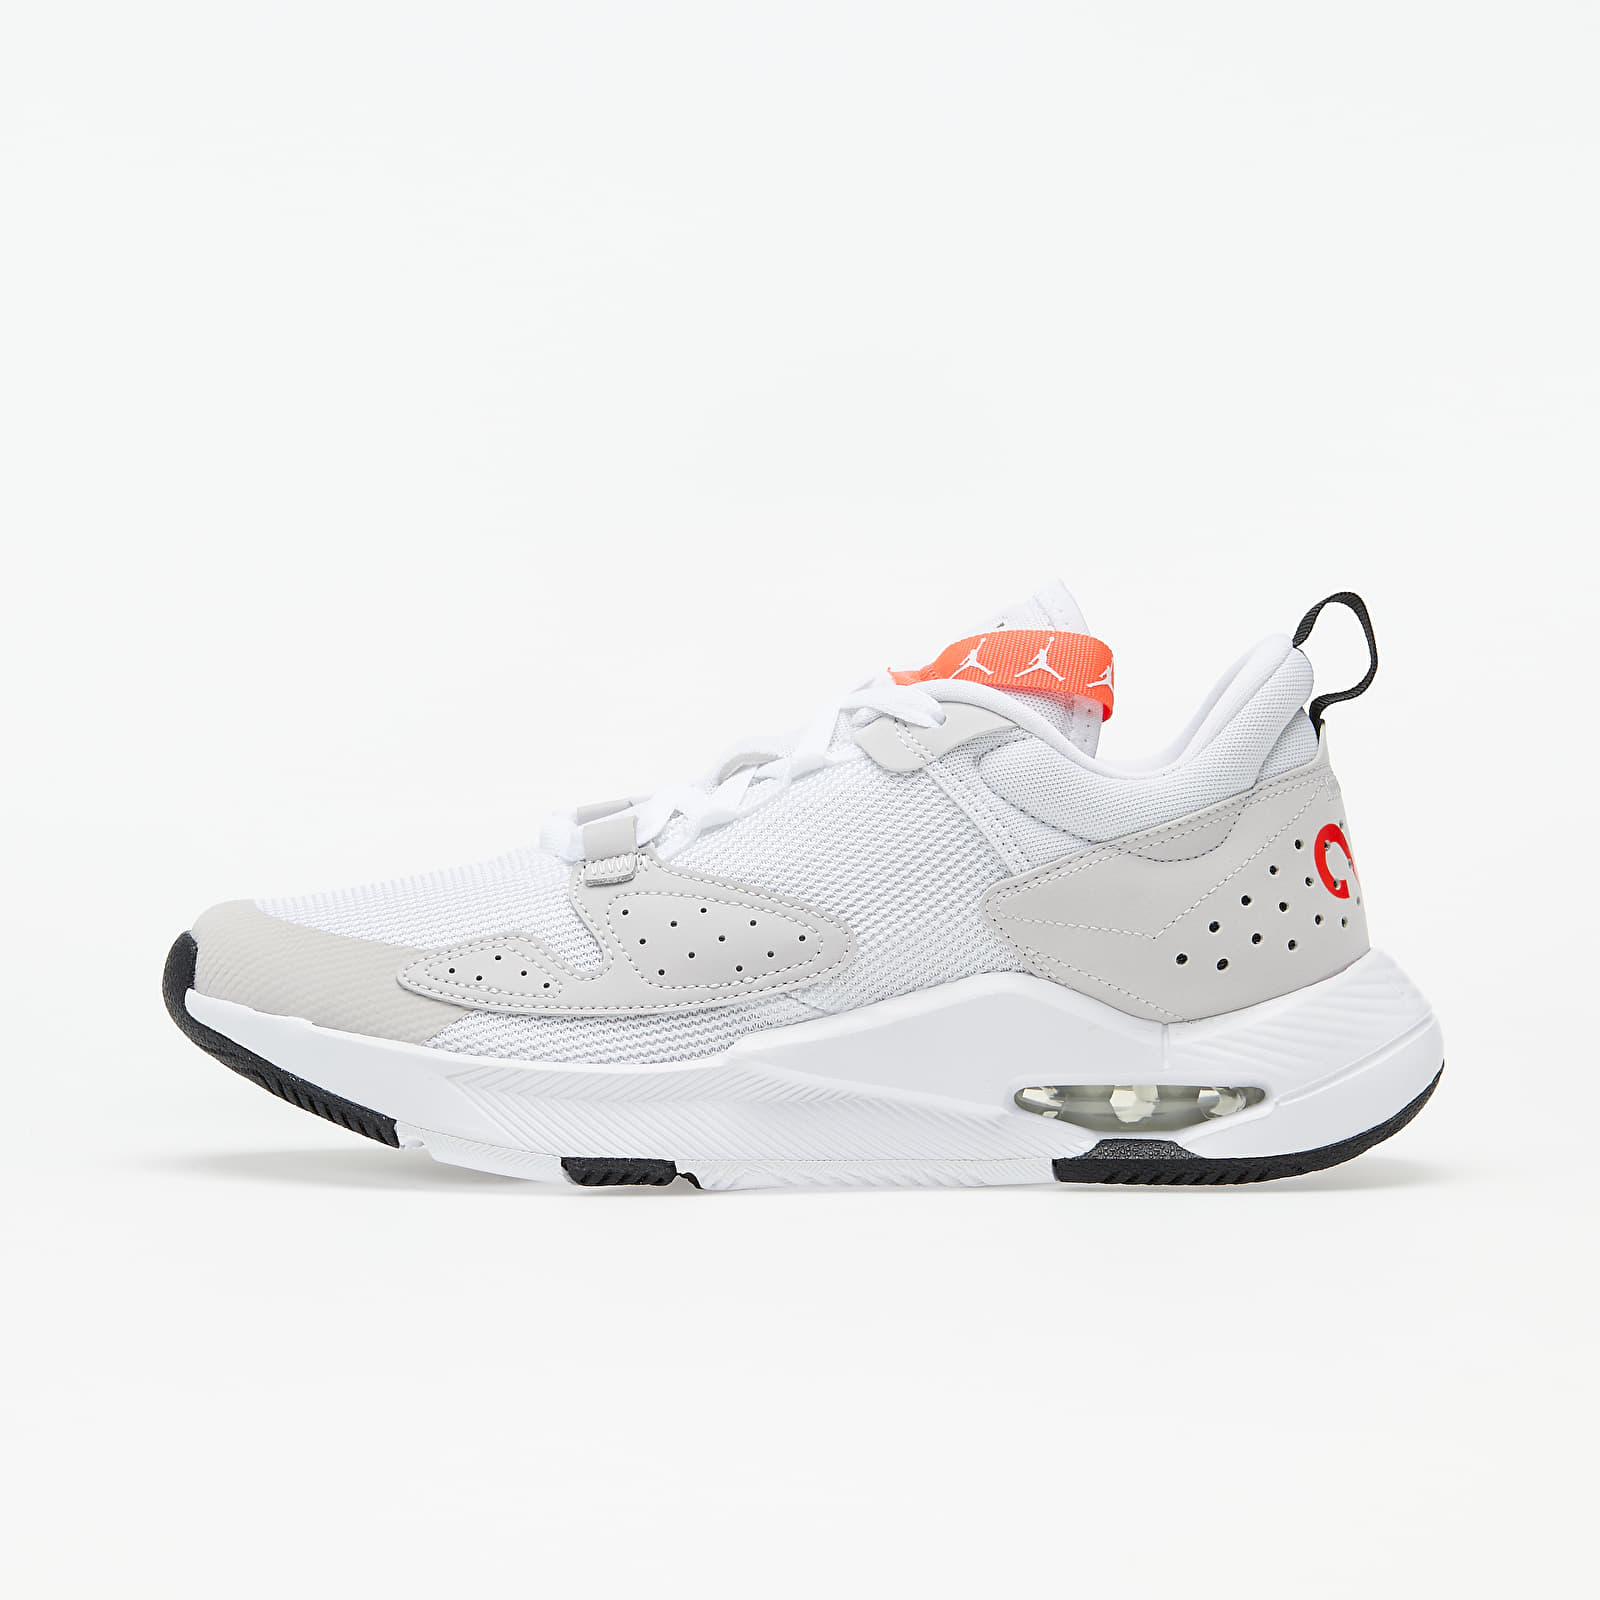 Jordan Air Cadence White/ White-Vast Grey-Black EUR 40.5